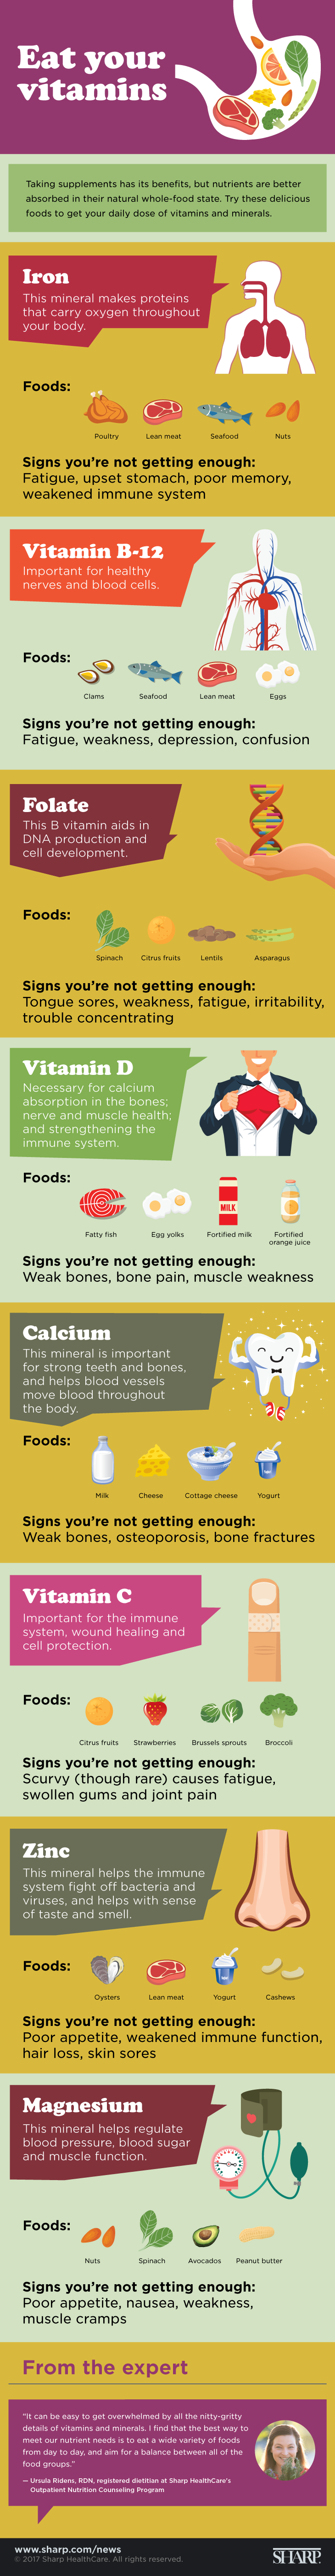 Eat your vitamins infographic